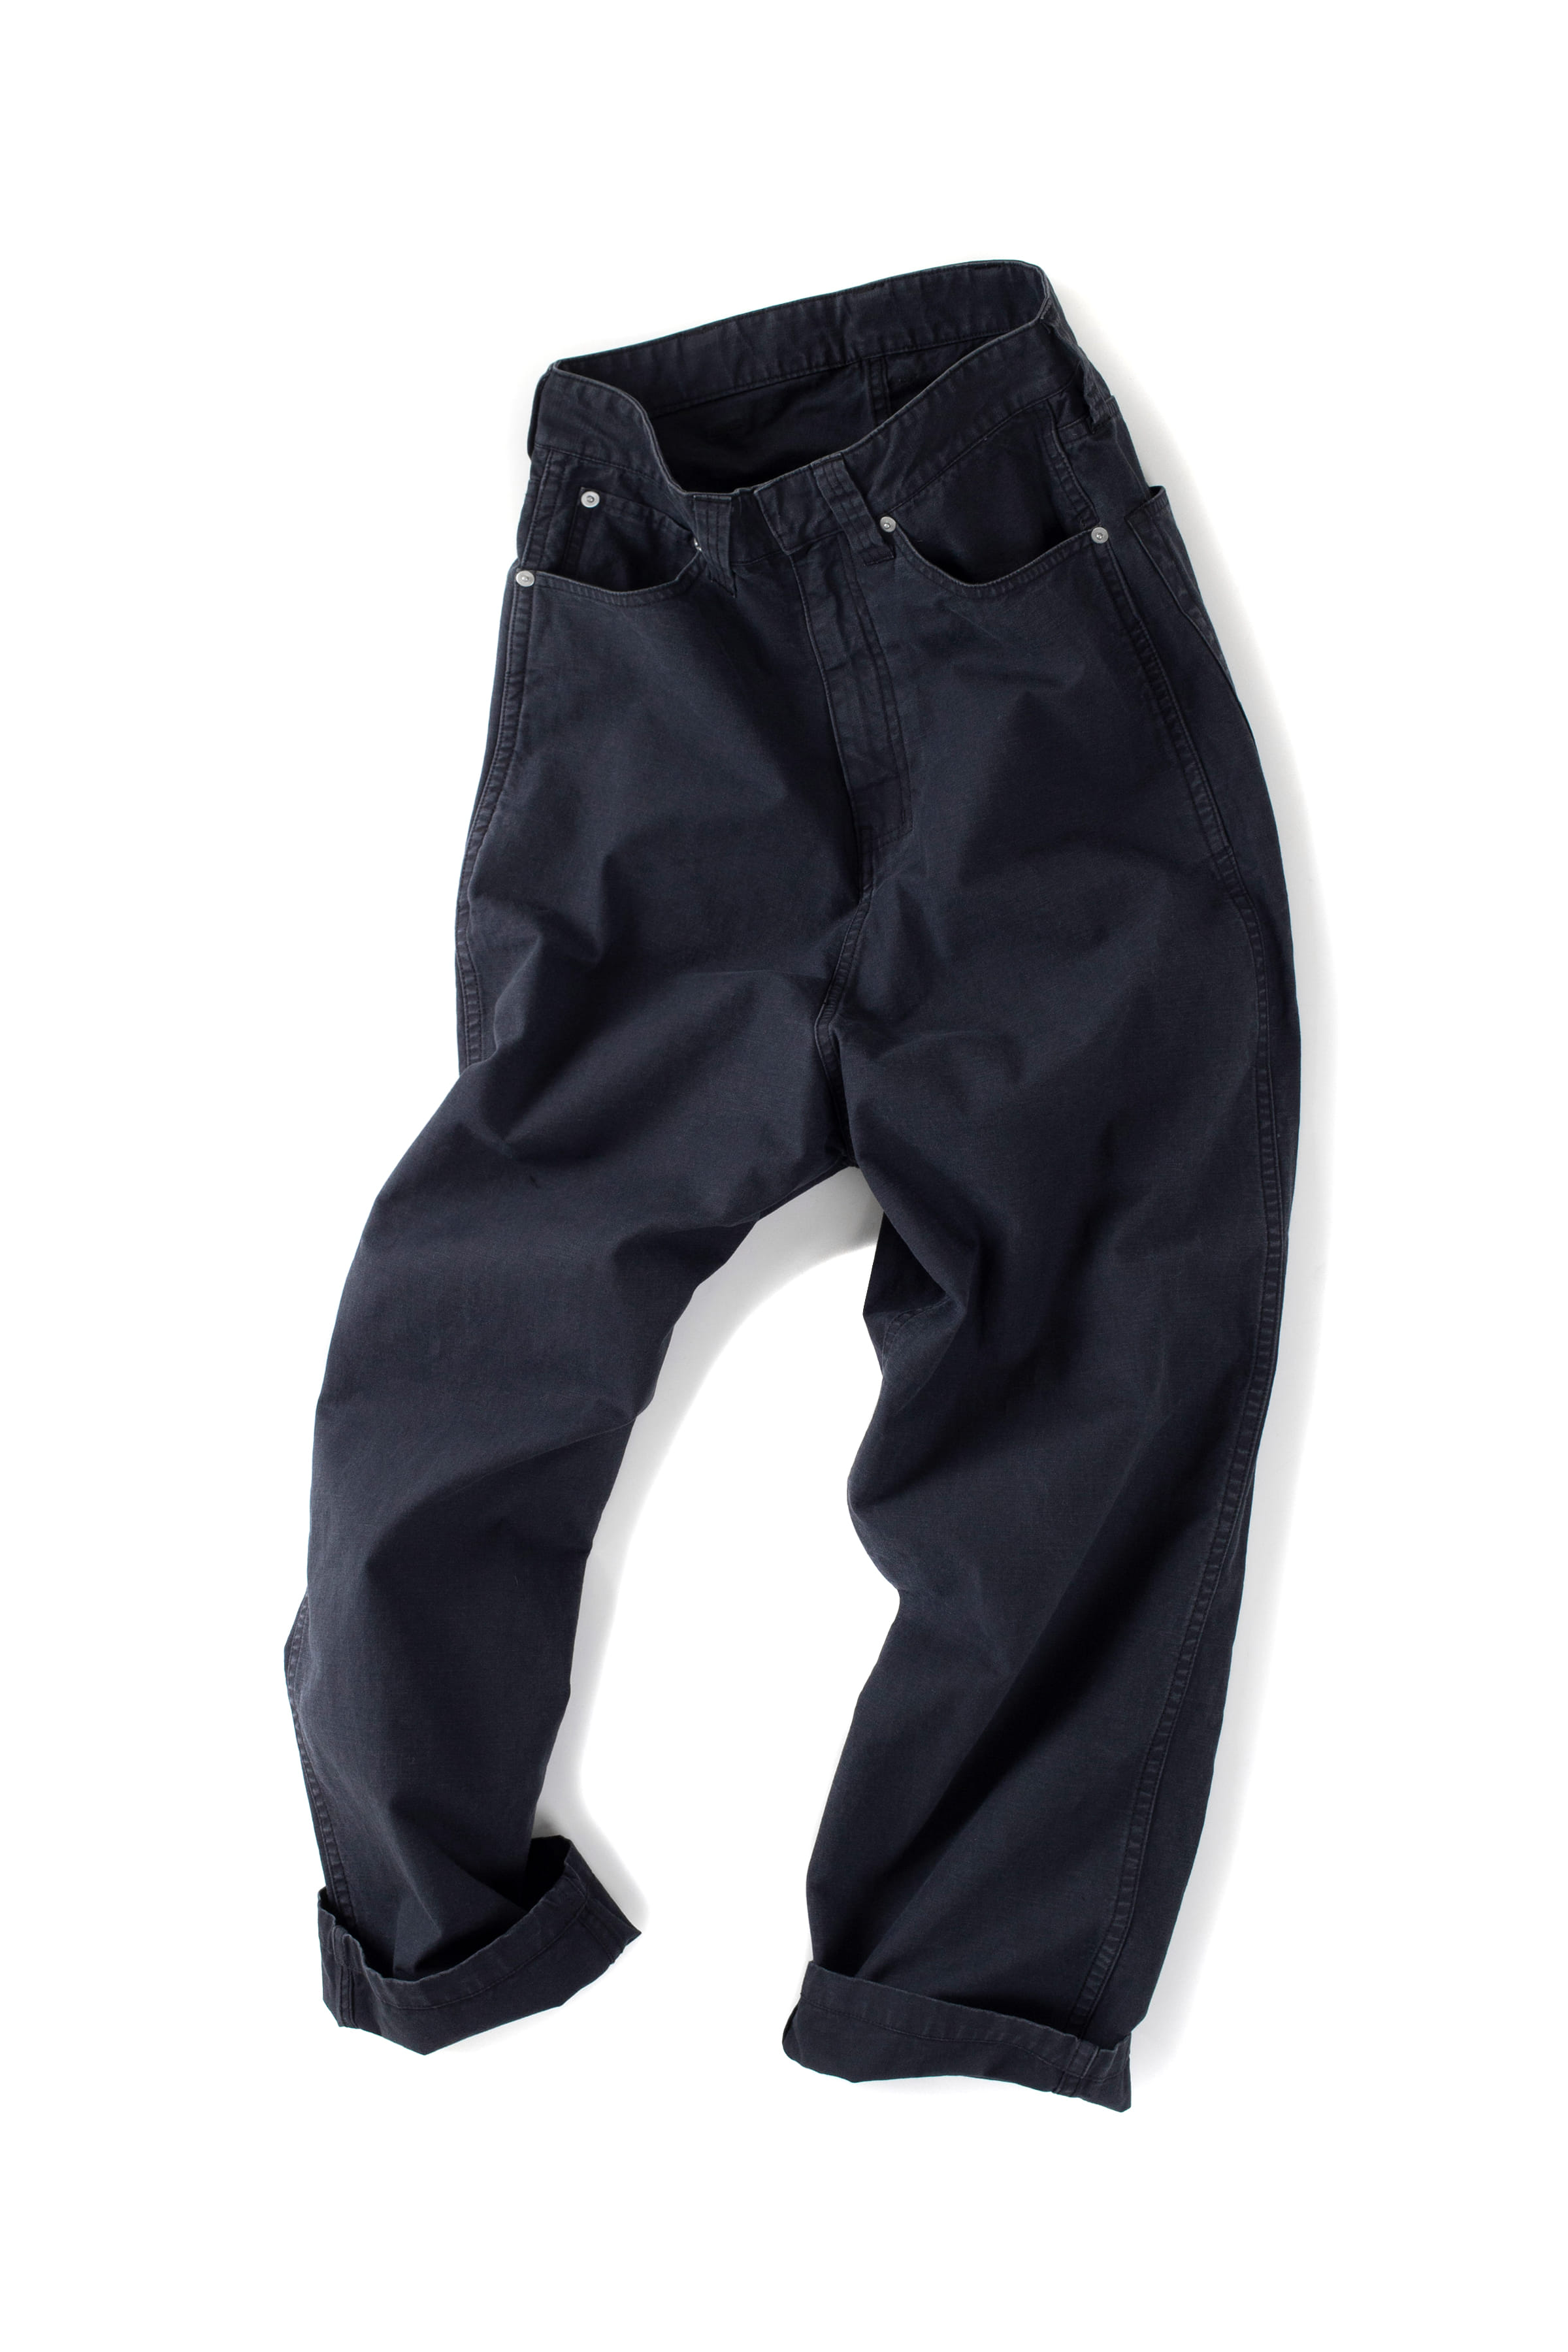 CLAMP : Crown Denim Pants (Black)